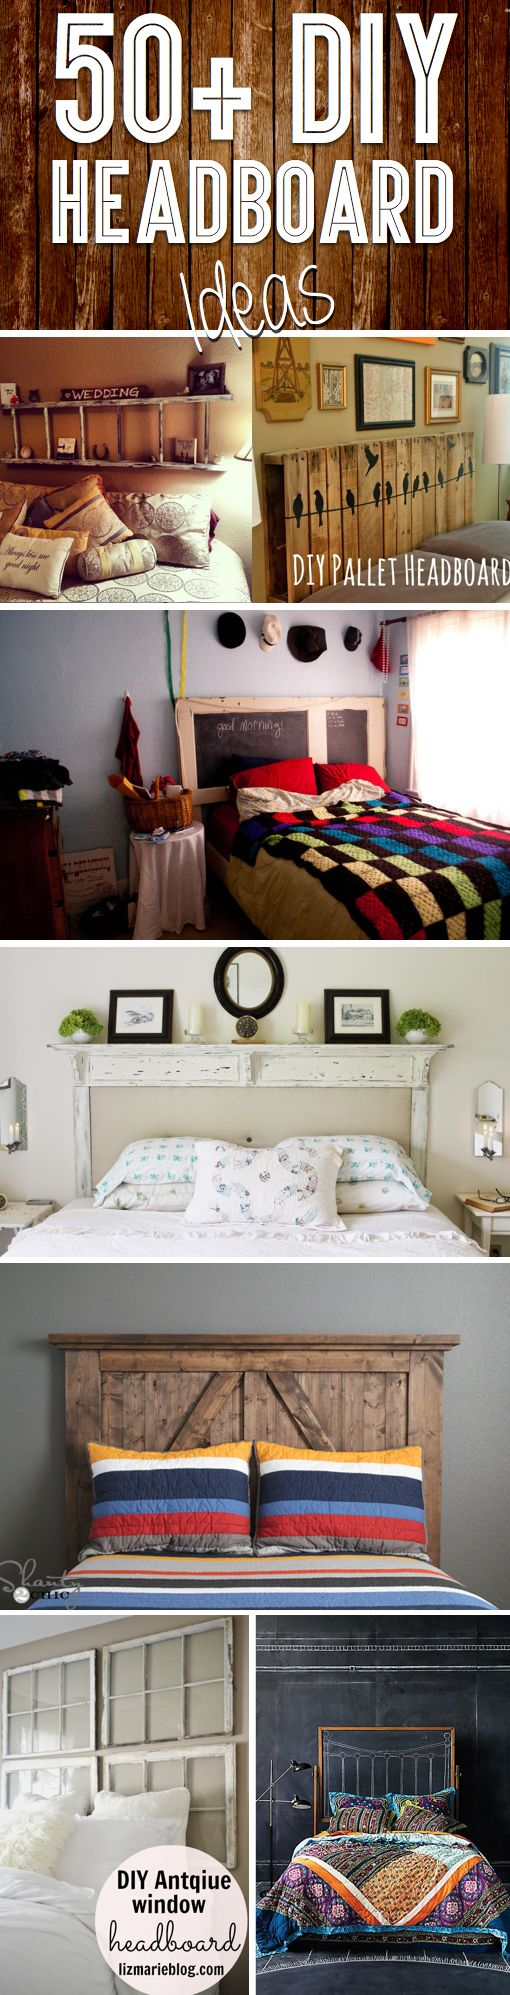 50 outstanding diy headboard ideas to spice up your - Bed without headboard ideas ...